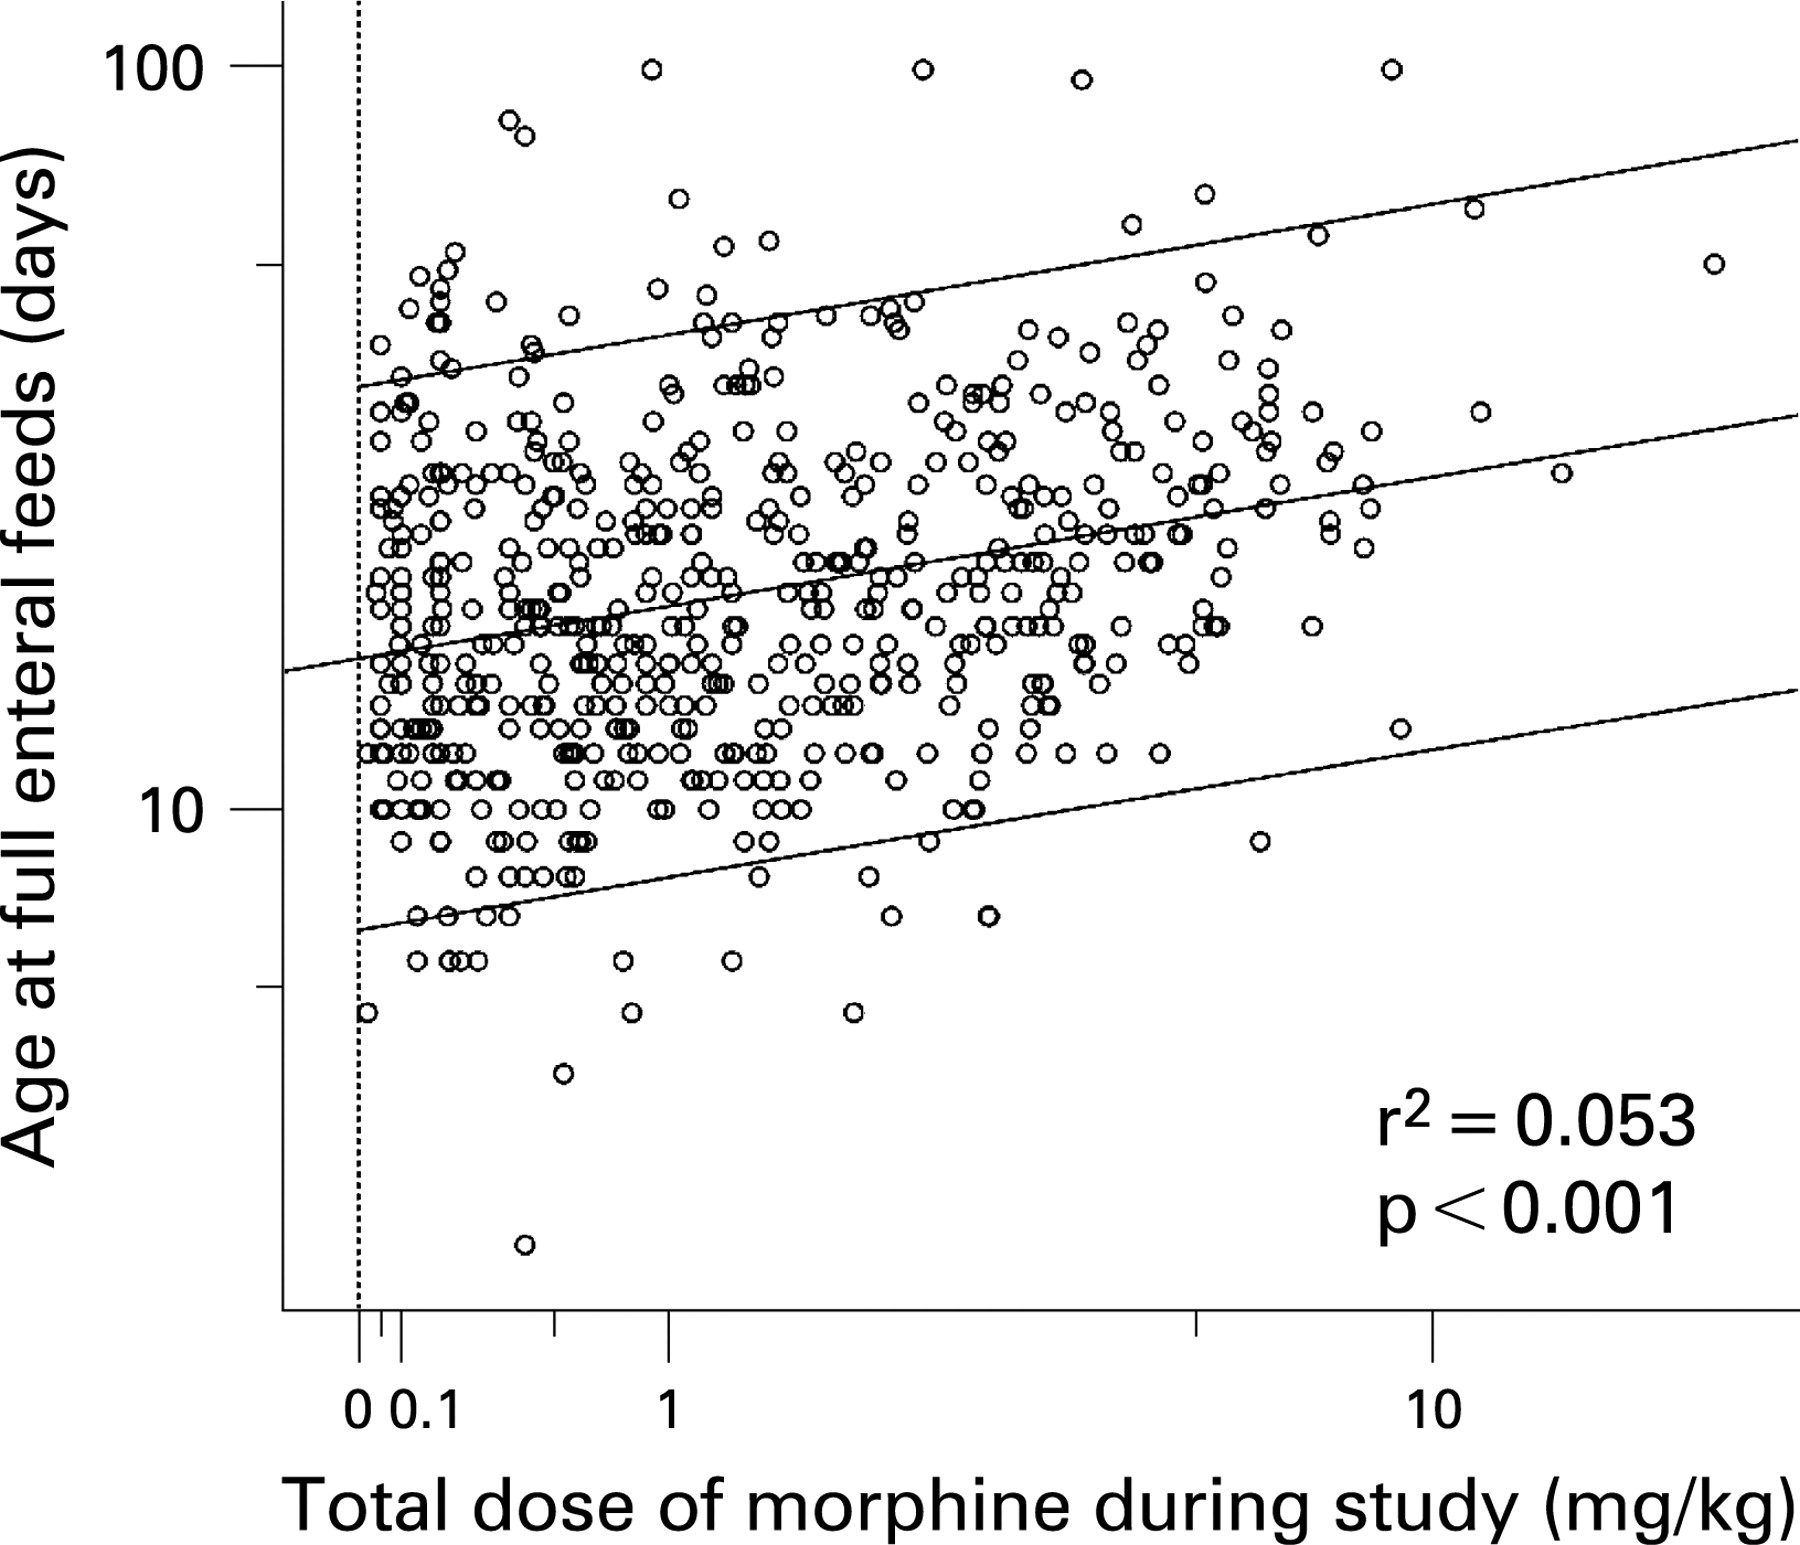 Morphine analgesia and gastrointestinal morbidity in